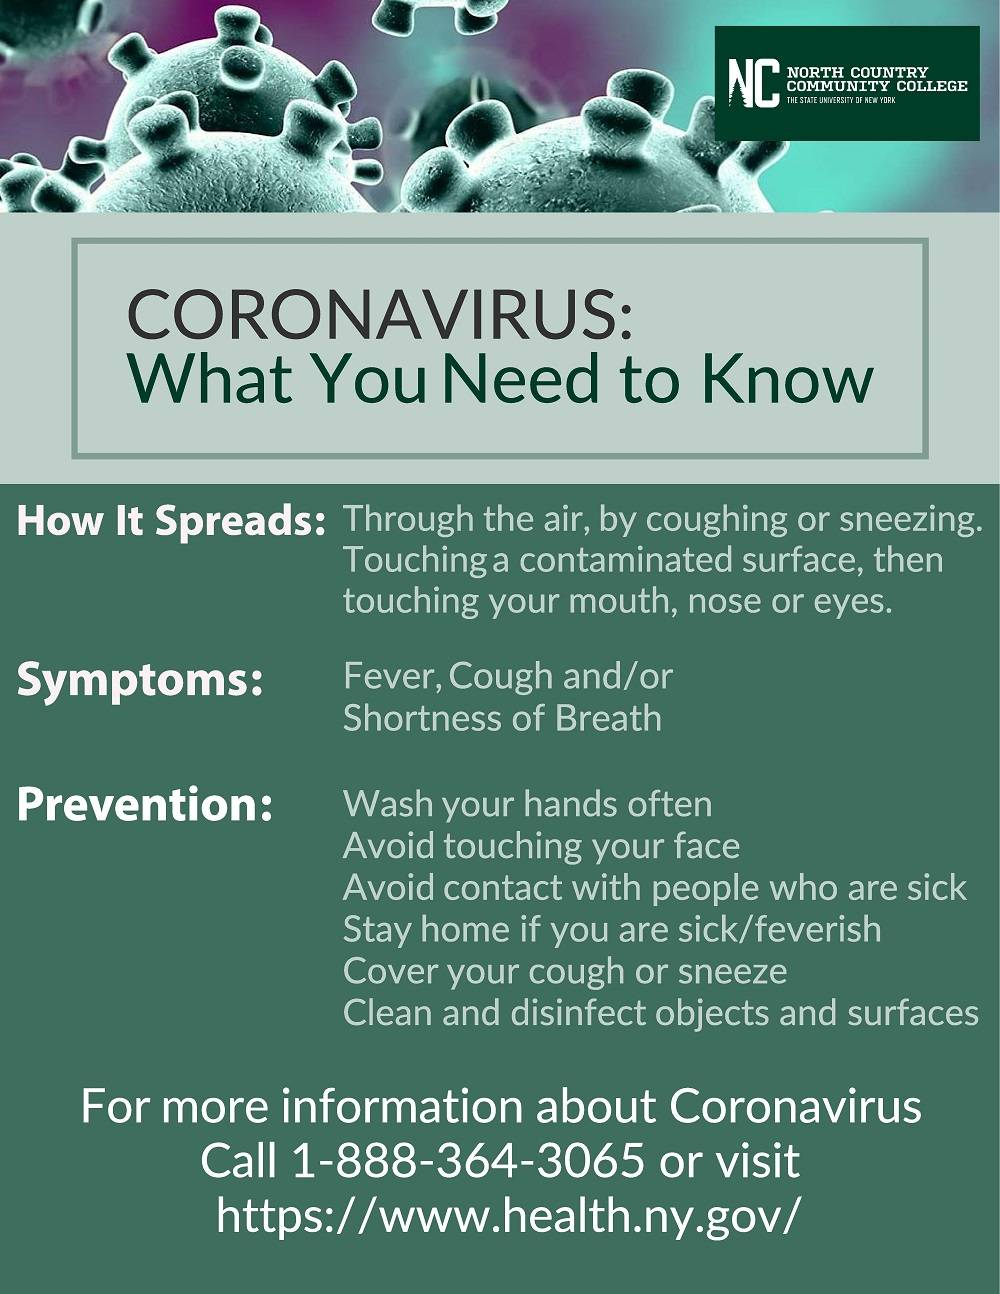 A flyer that describes steps to help prevent the spread of coronavirus.